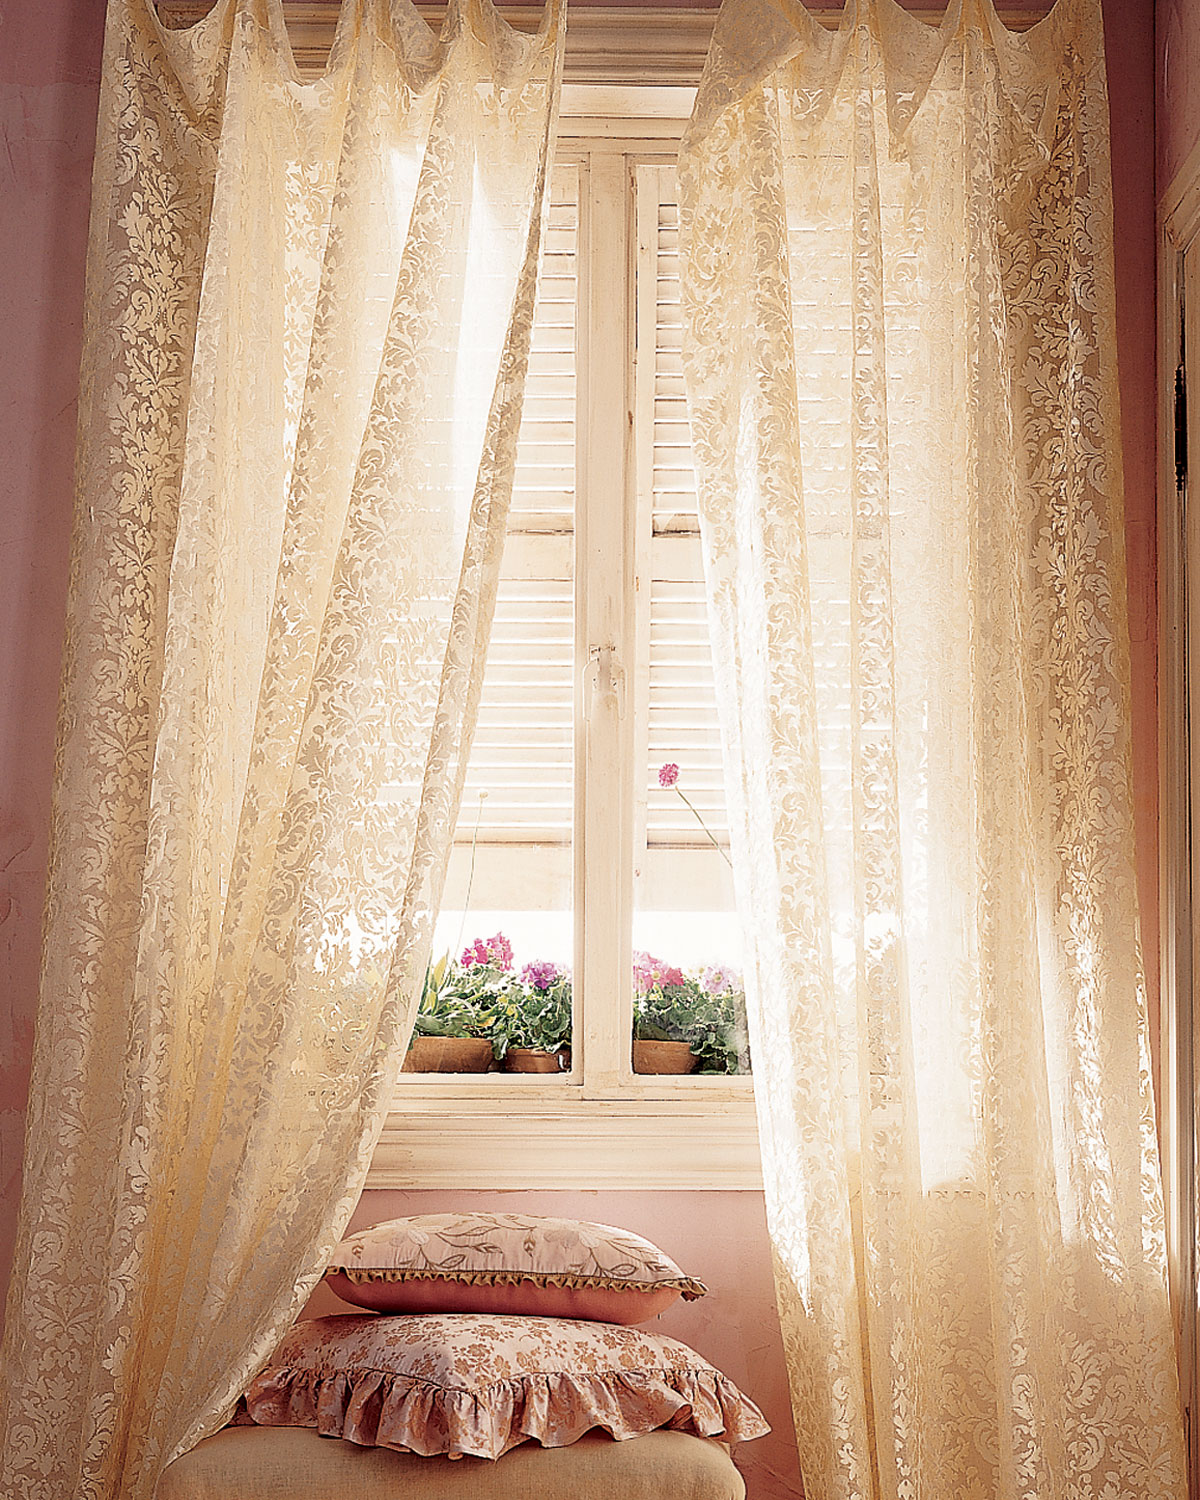 Decorate your home with stylish & trendy Curtains!! | dealrocker on ...